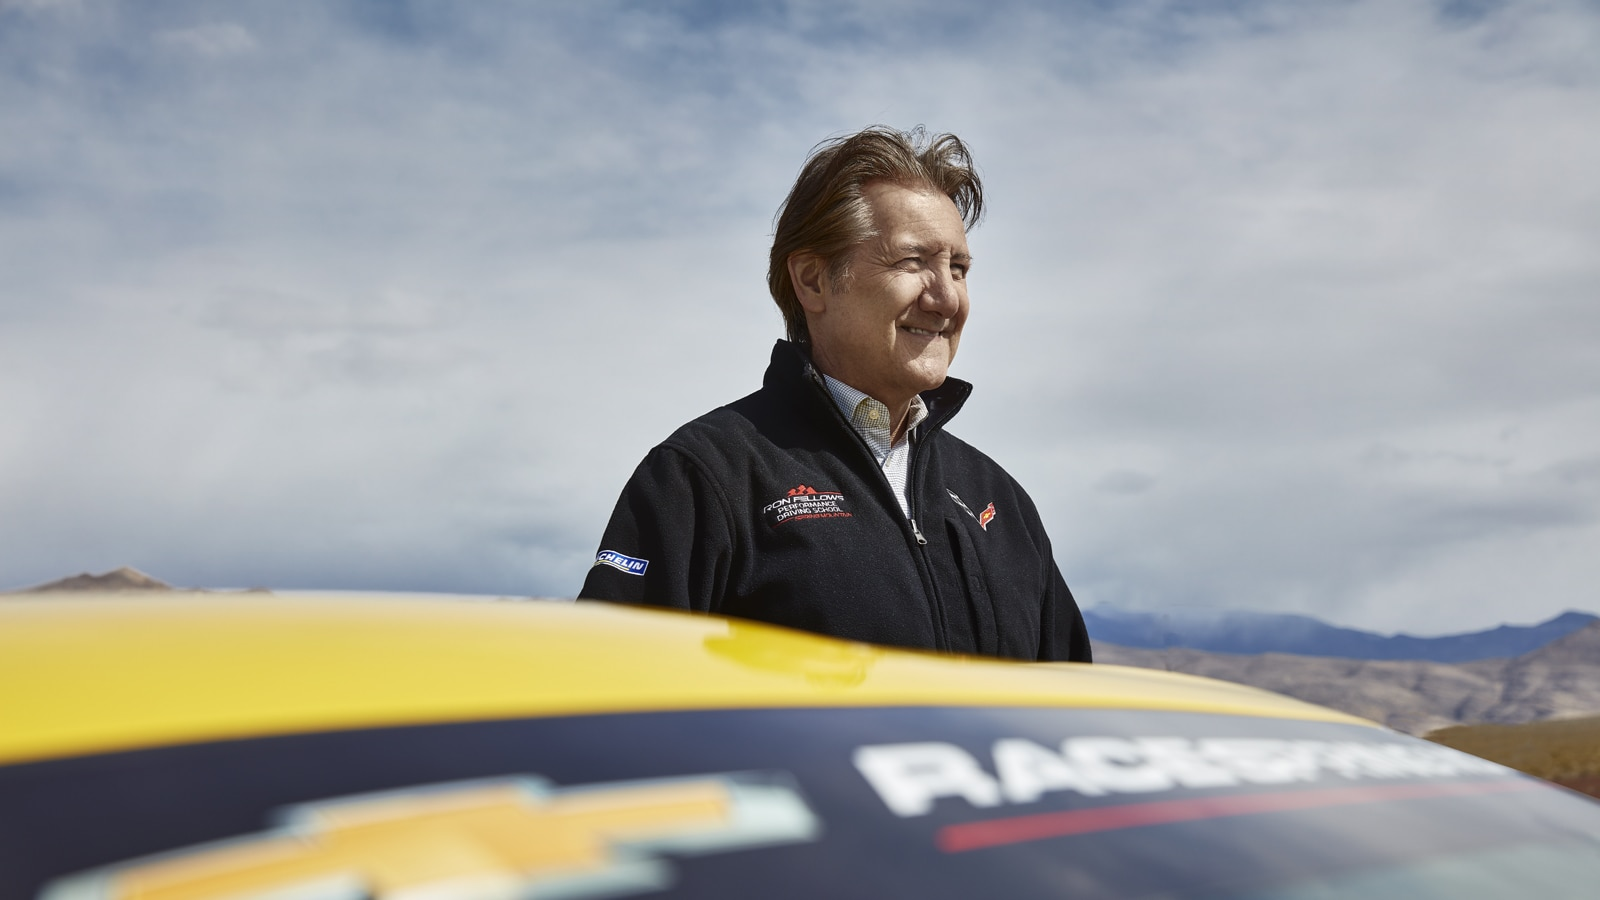 Ron Fellows detrás de un Corvette amarillo.